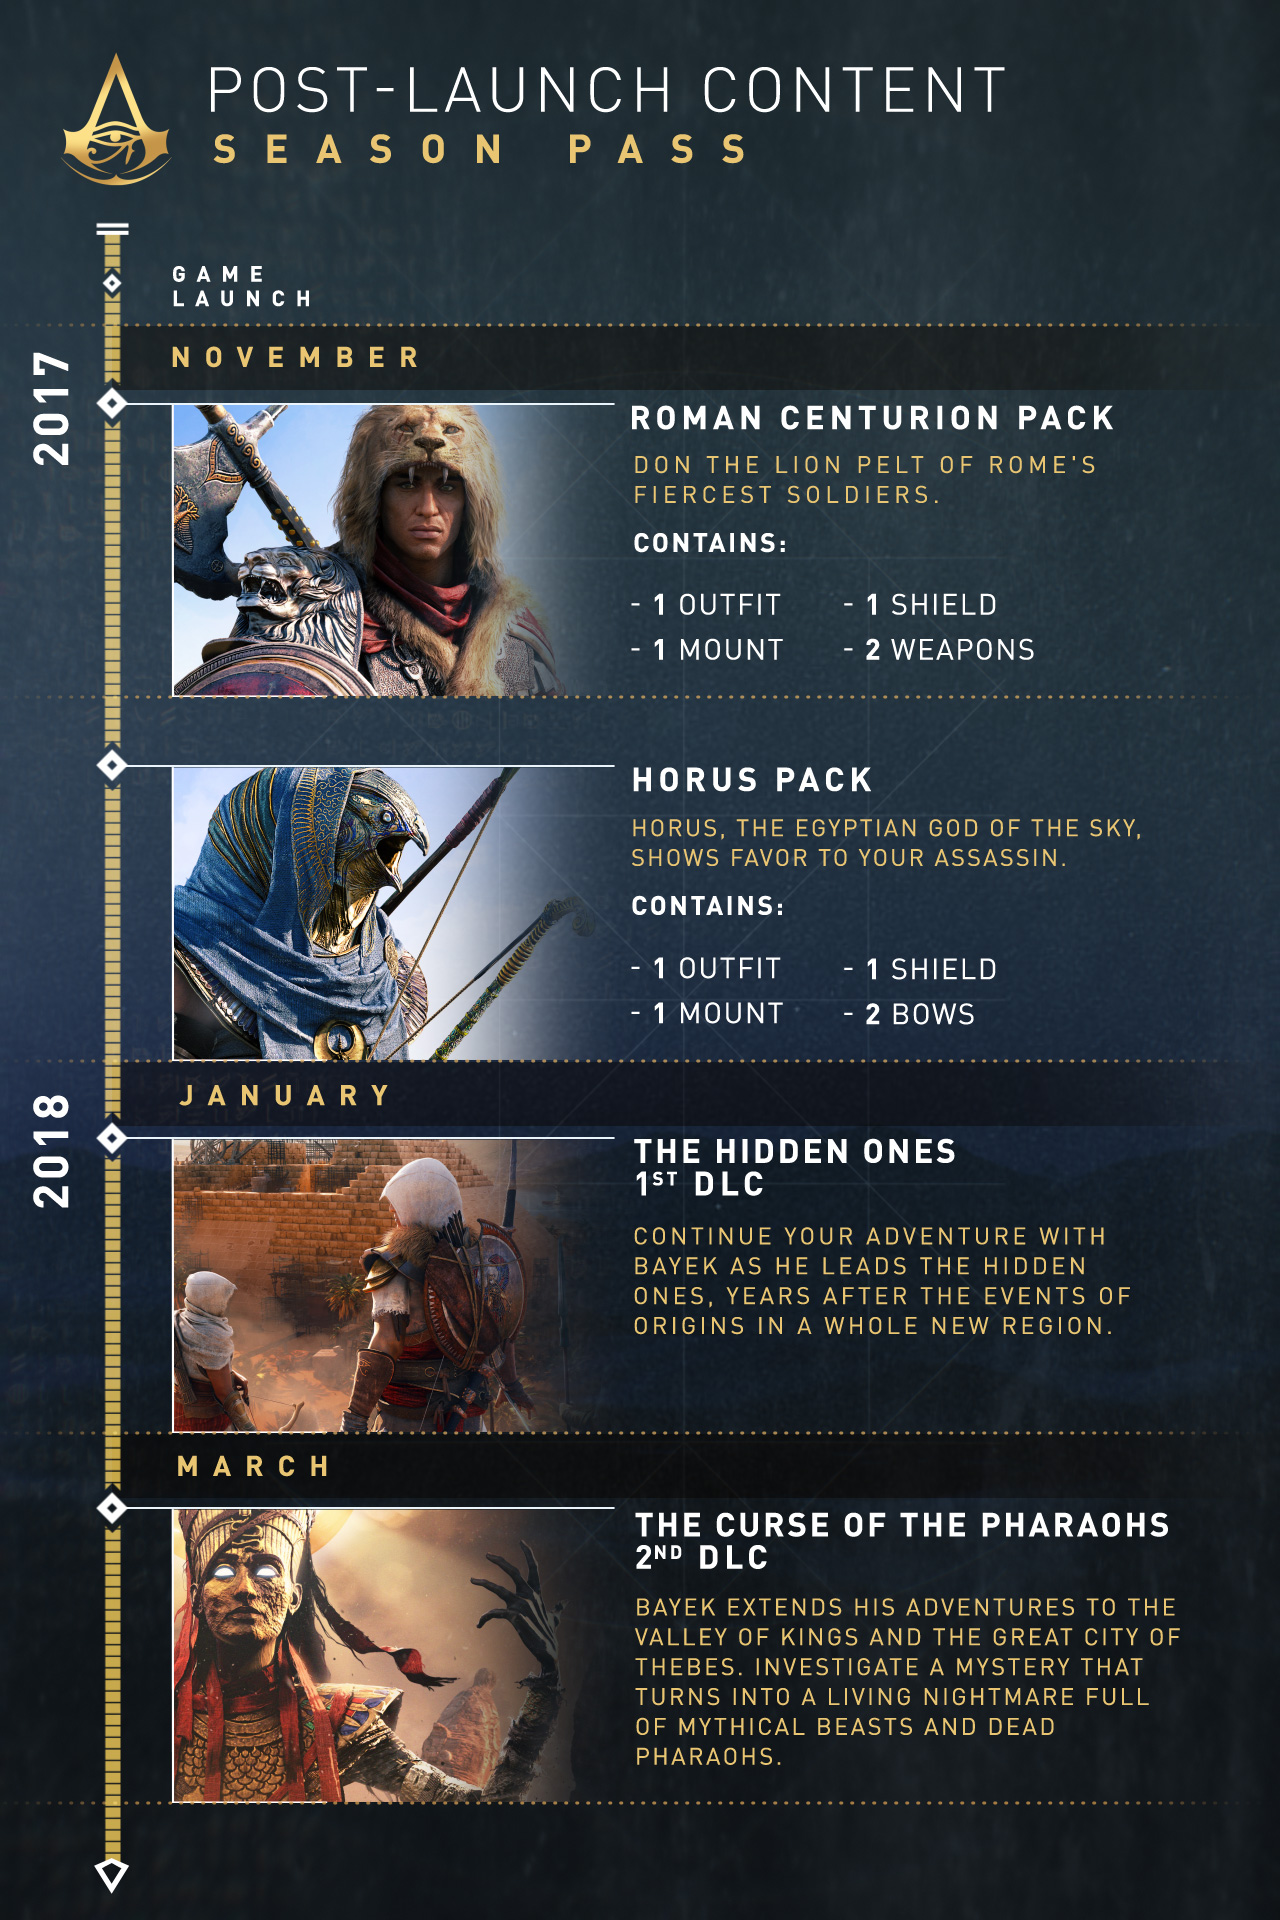 aco_seasonpass_timeline1